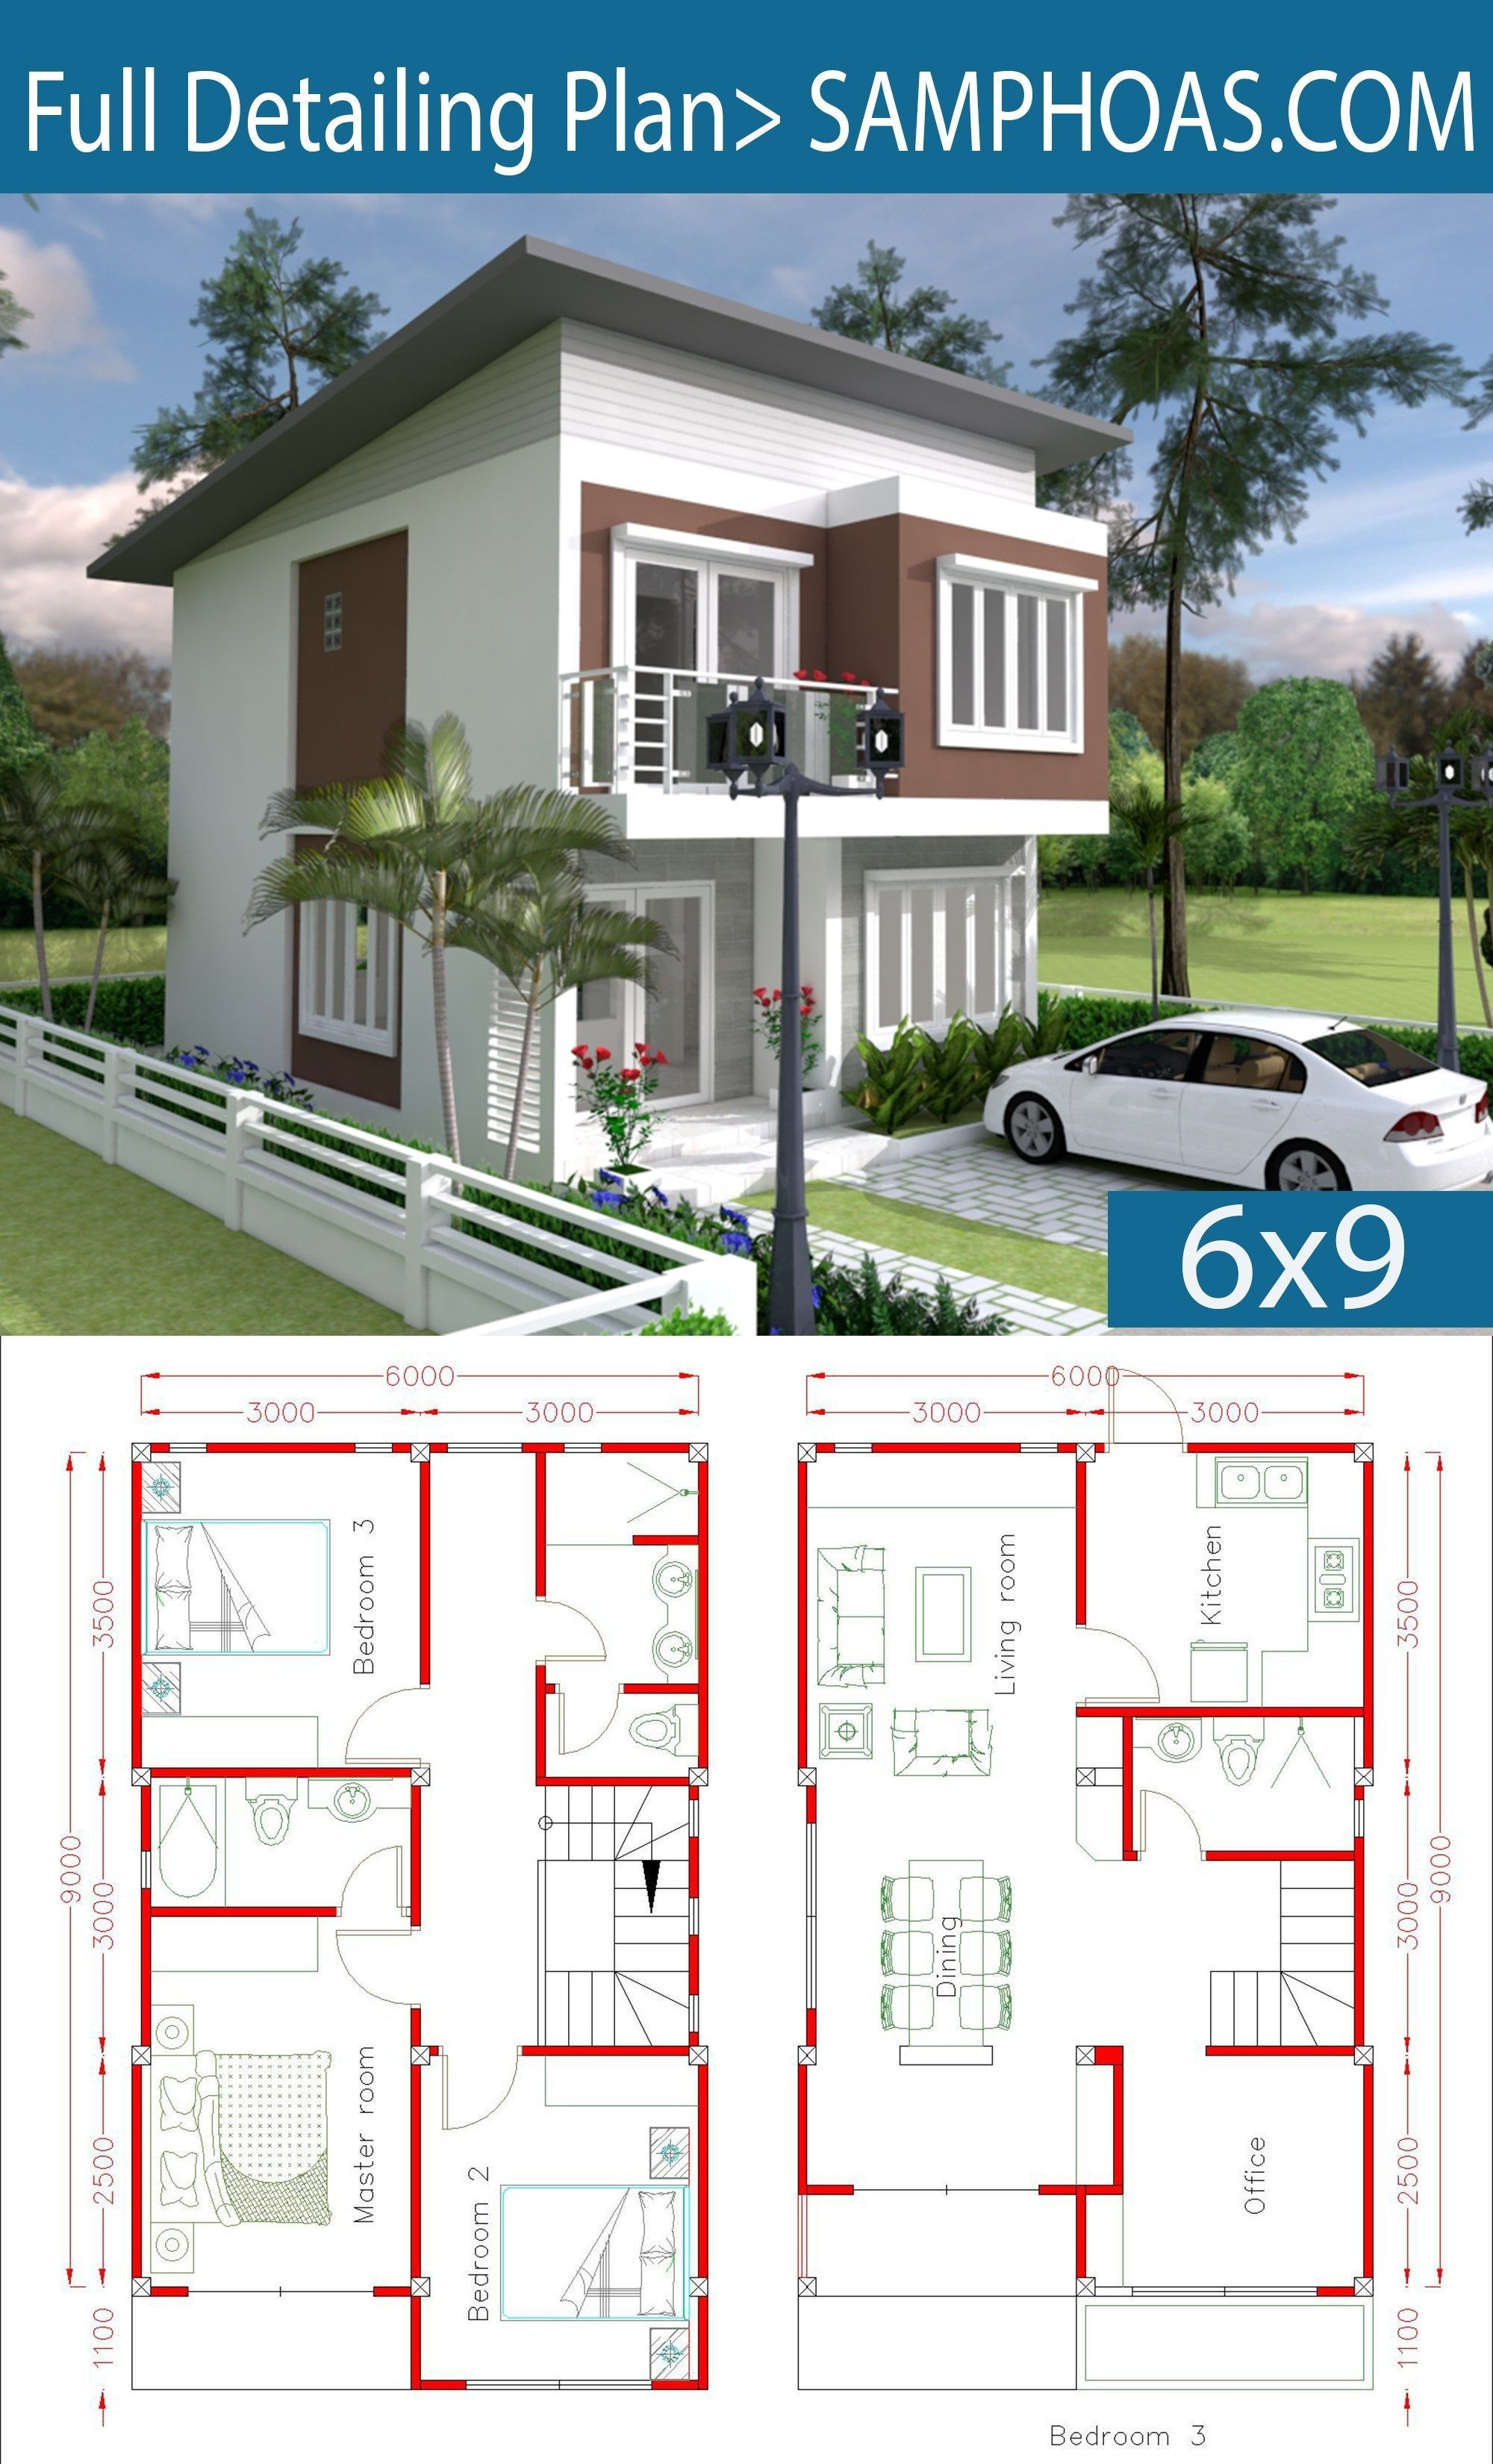 Simple Home Design Plan 6x9m With 3 Bedrooms Simple Home Design Plan 6x9m With 3 Bedrooms Tishia Baker Tish Simple House Design Simple House House Layout Plans